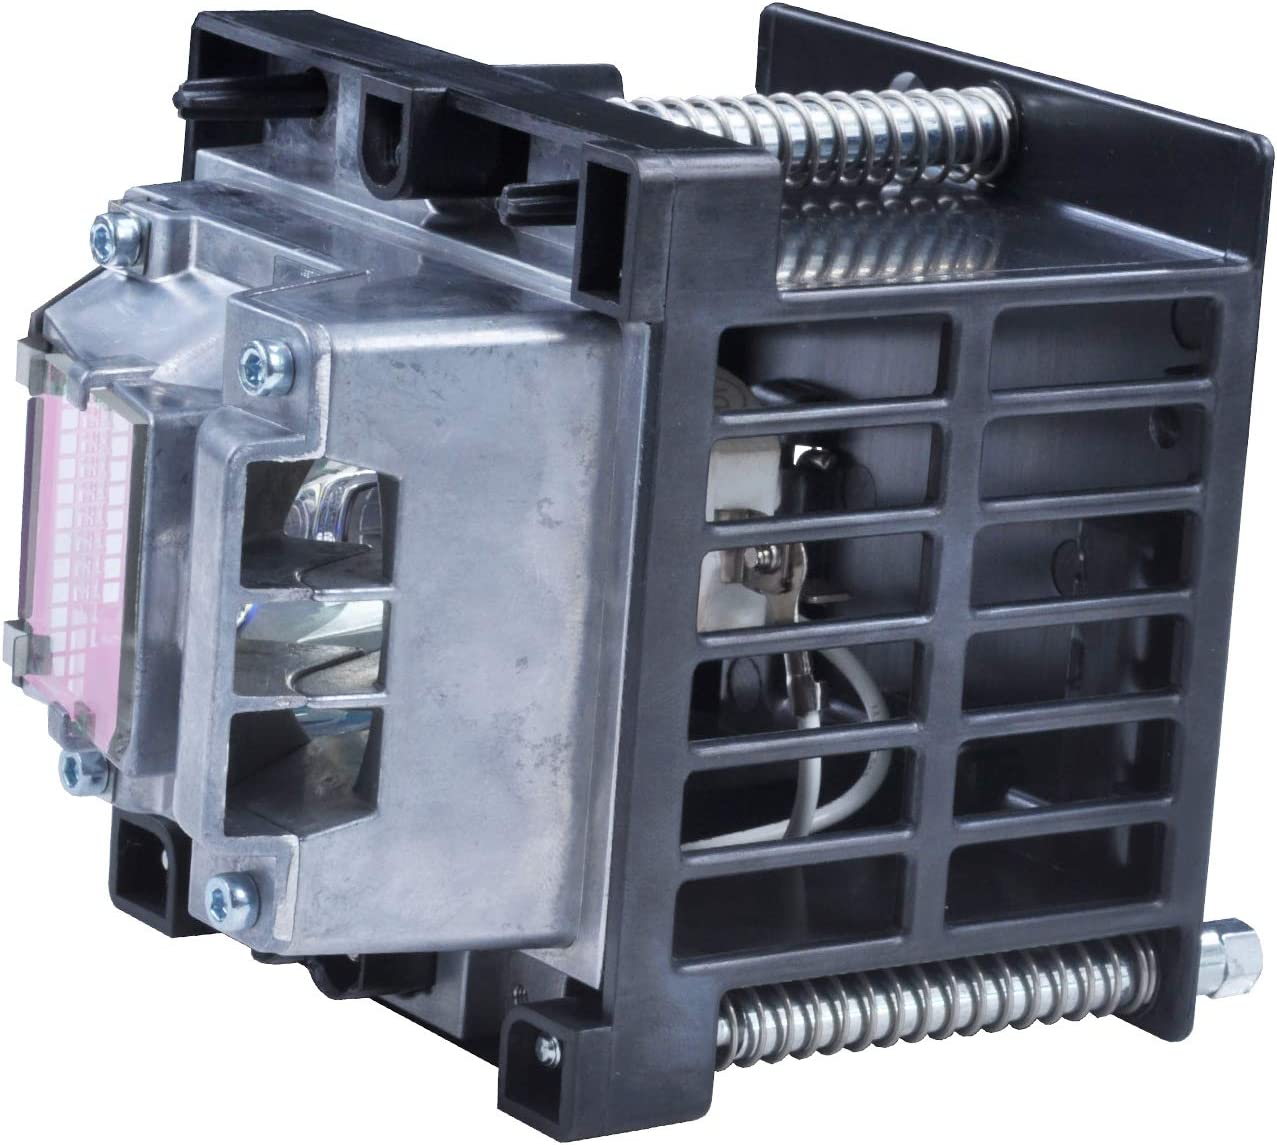 AWO Original Projector Lamp Bulb R9802213 with Housing Fit for Barco DP2K-6E